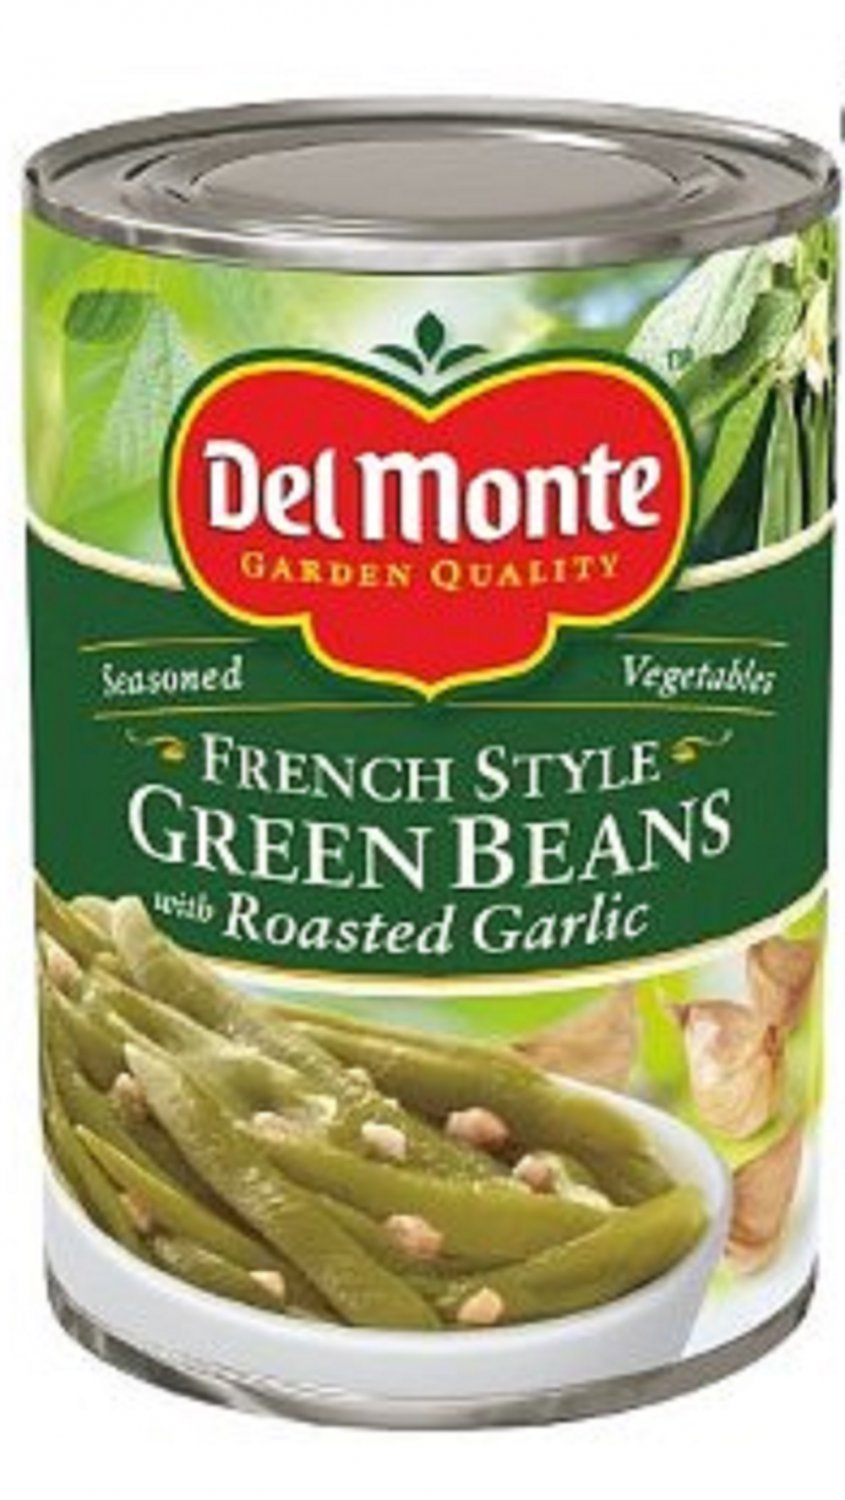 Del Monte, Seasoned French Style Green Beans with Garlic, 14.5oz Can